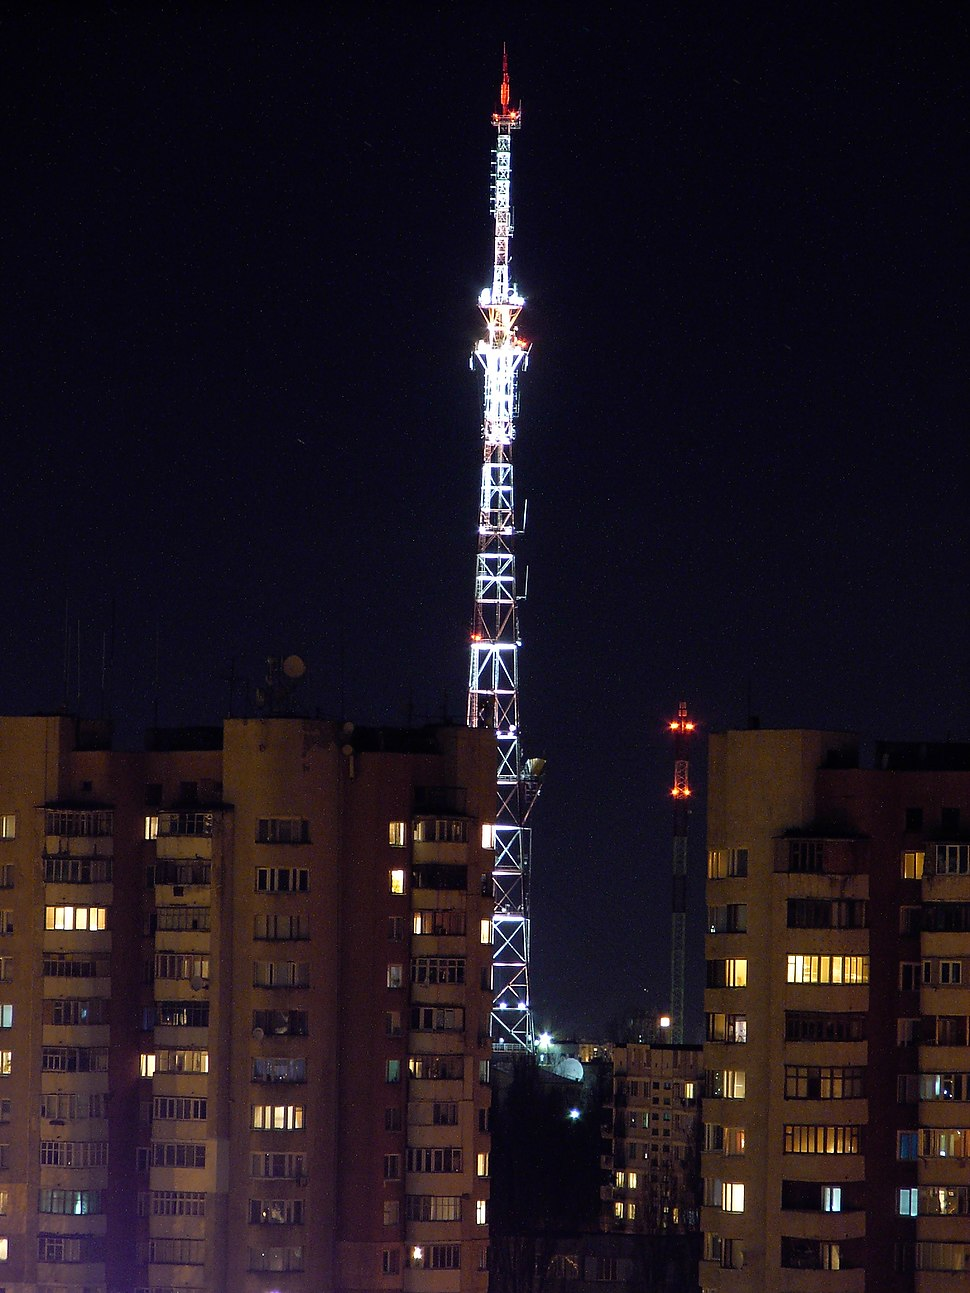 Chisinau TV tower at night, NIT TV tower in background